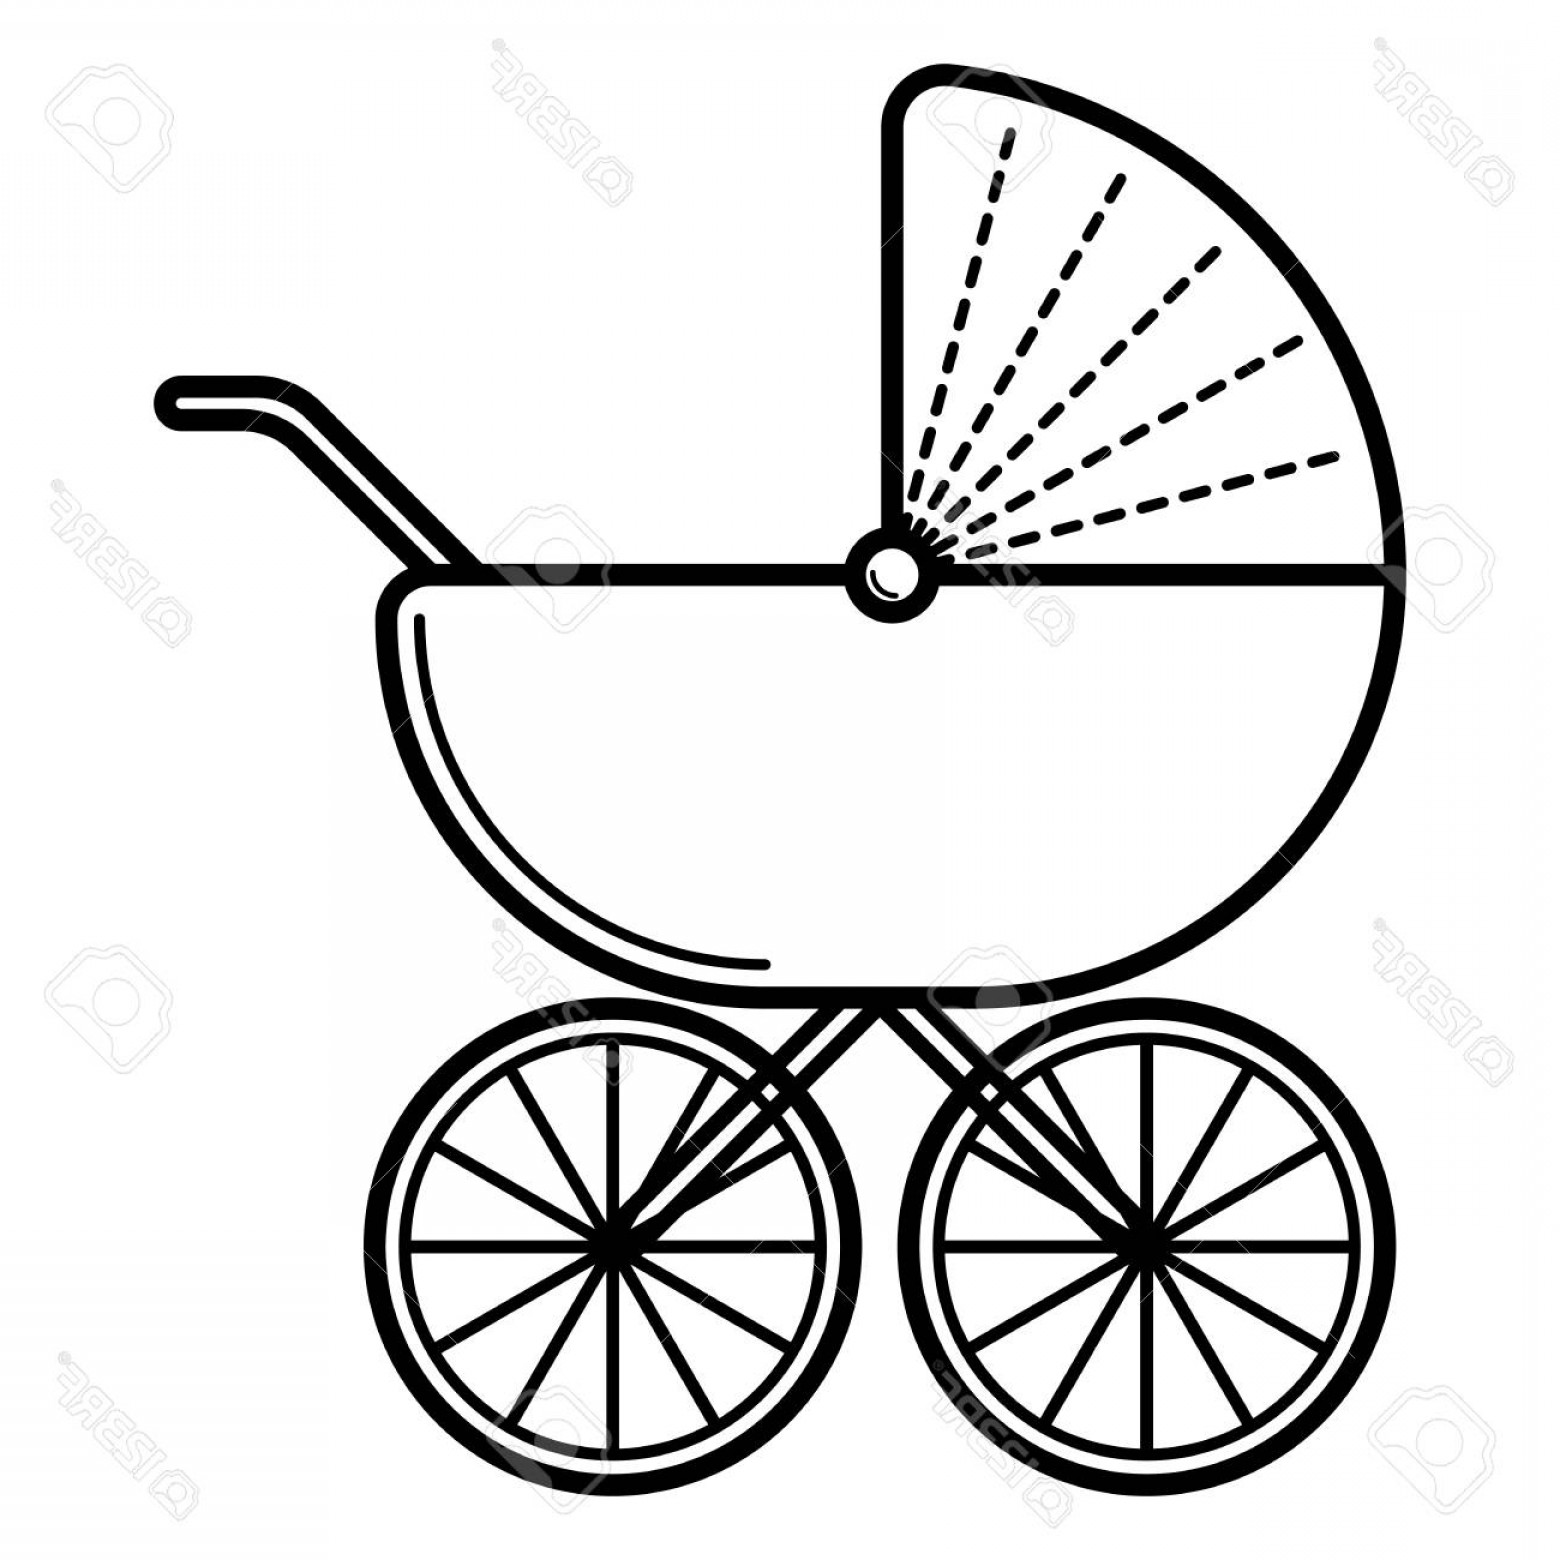 Baby carriage clipart black and white clip royalty free Baby Carriage Drawing | Free download best Baby Carriage Drawing on ... clip royalty free